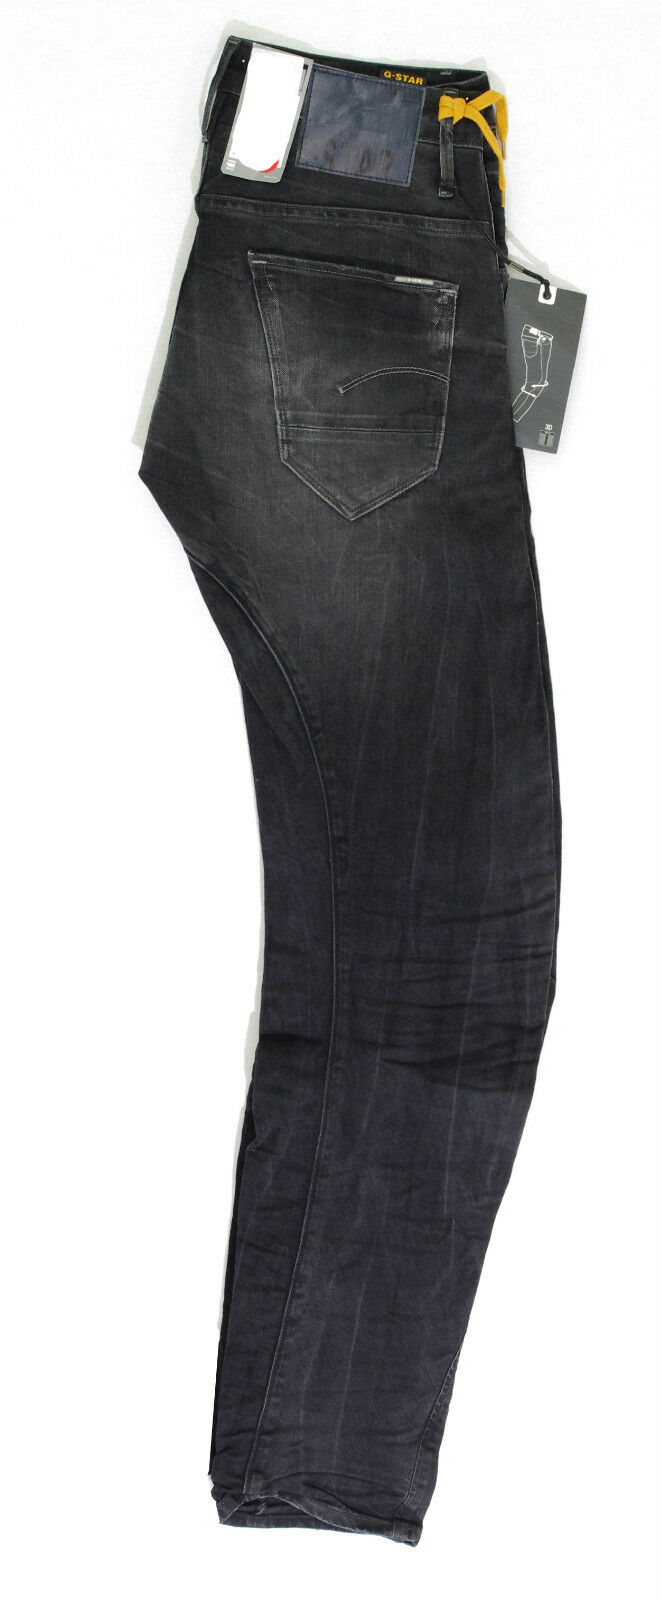 G STAR RAW jeans jeans jeans ARC 3D Slim Dark Aged grigio used homme 50783 5758 89 0fc3e7